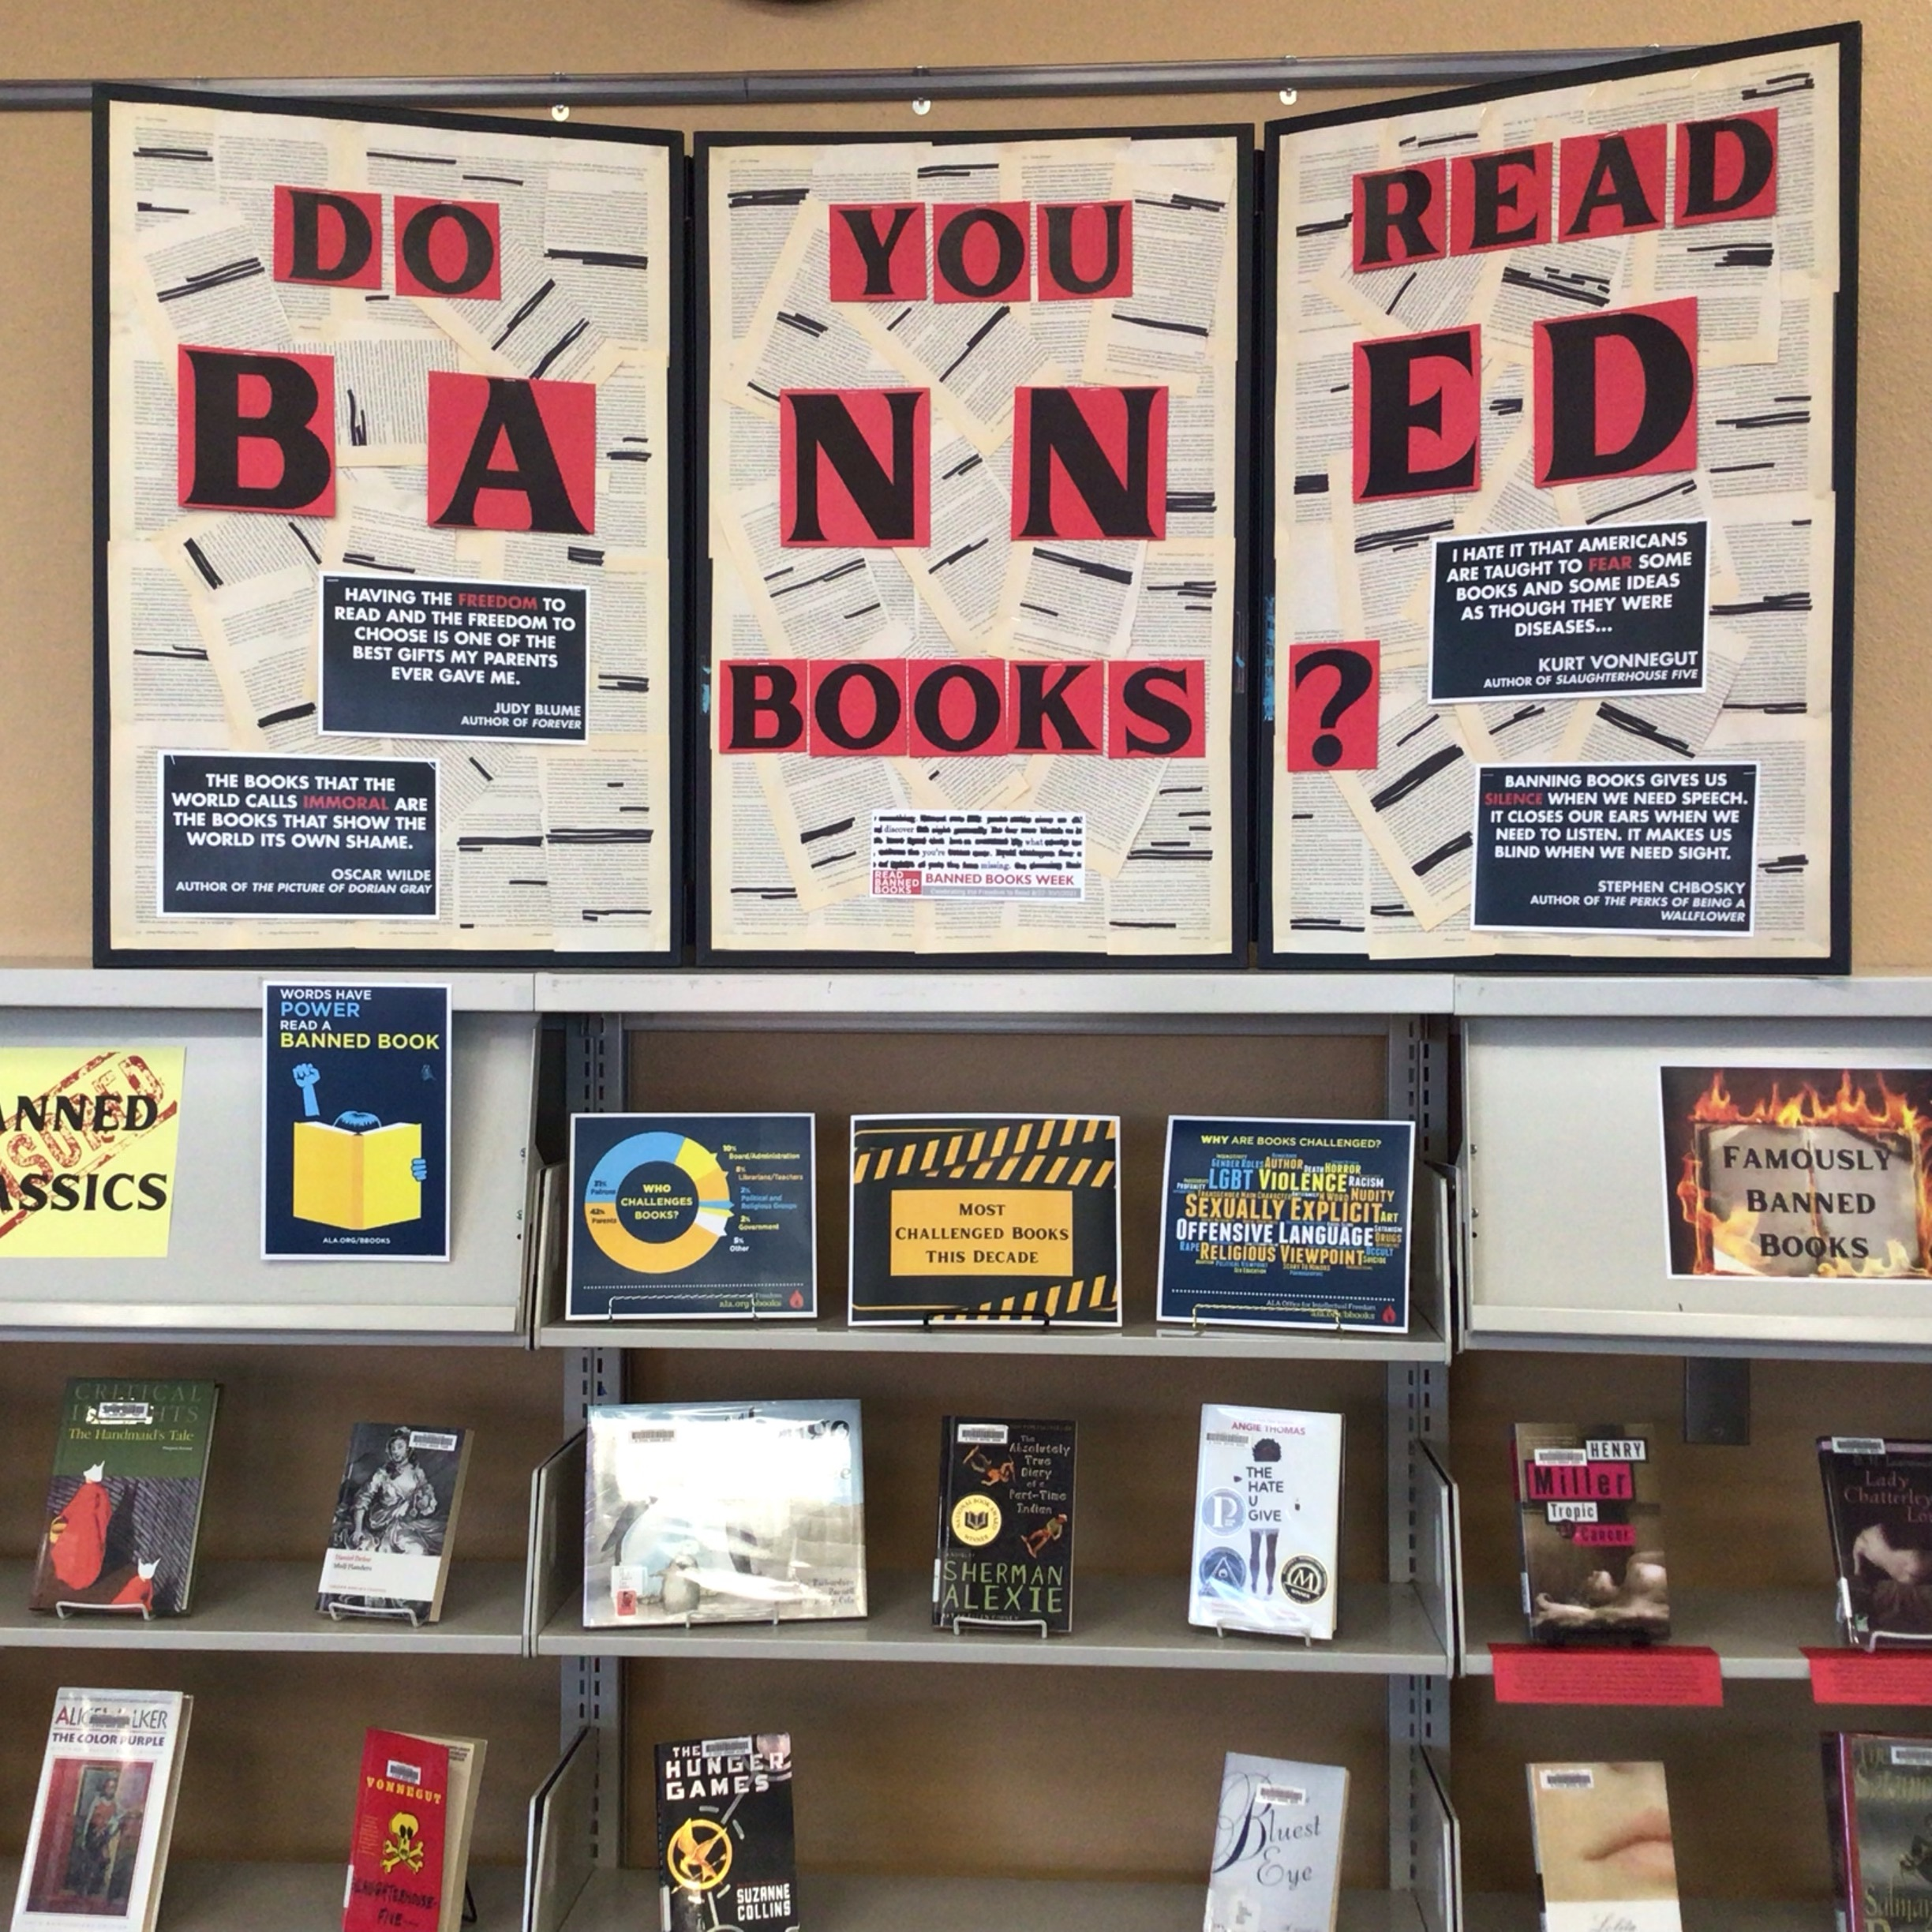 image of NW Library Banned Books Display